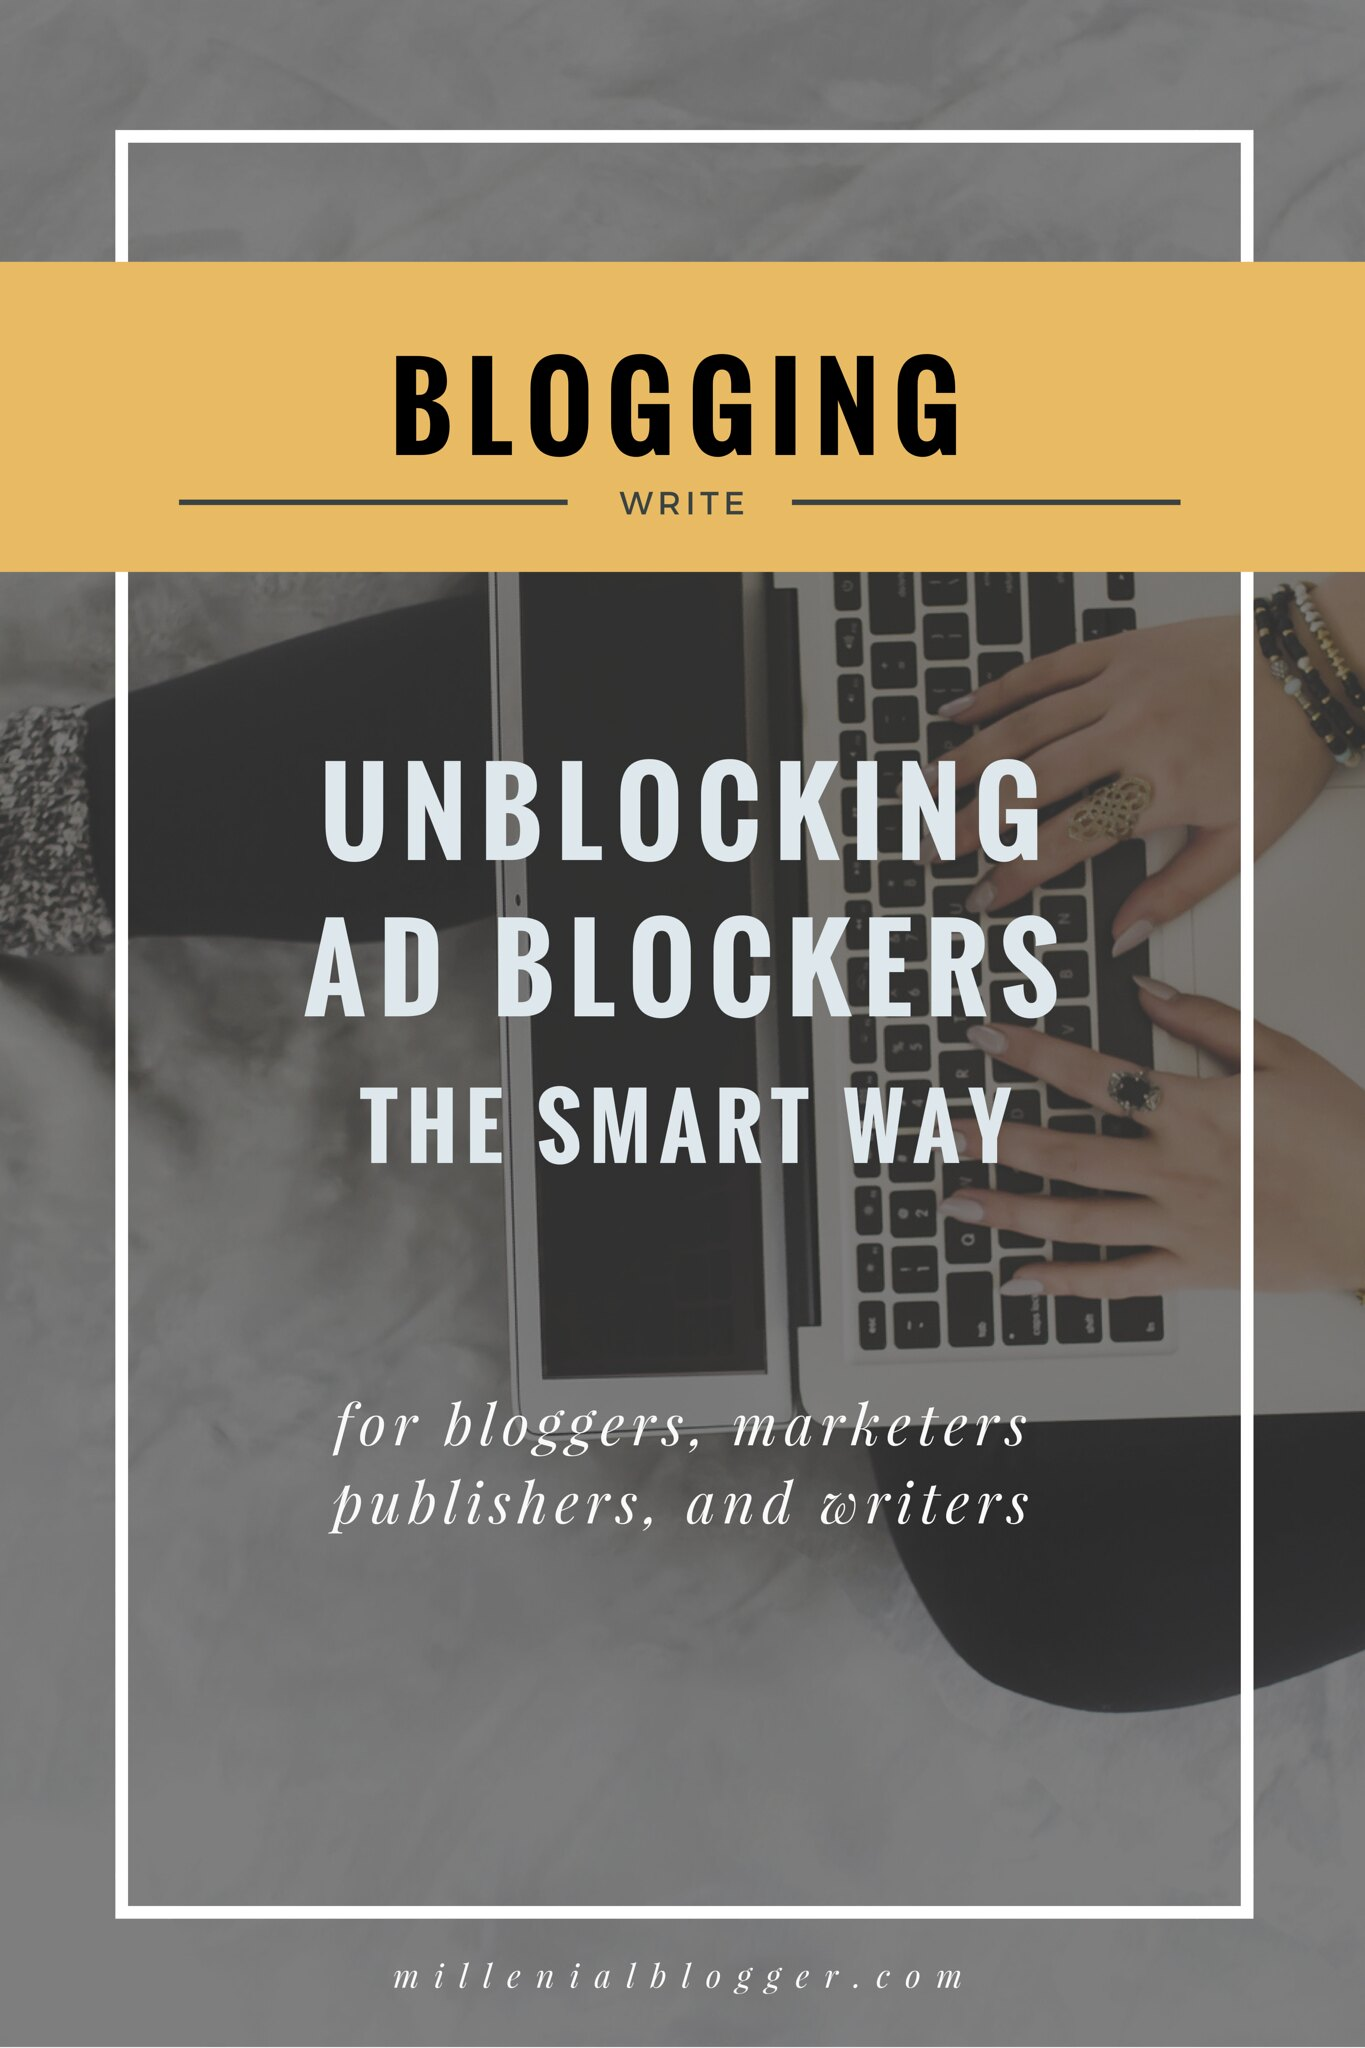 Unblocking Ad Blockers - The Smart Way